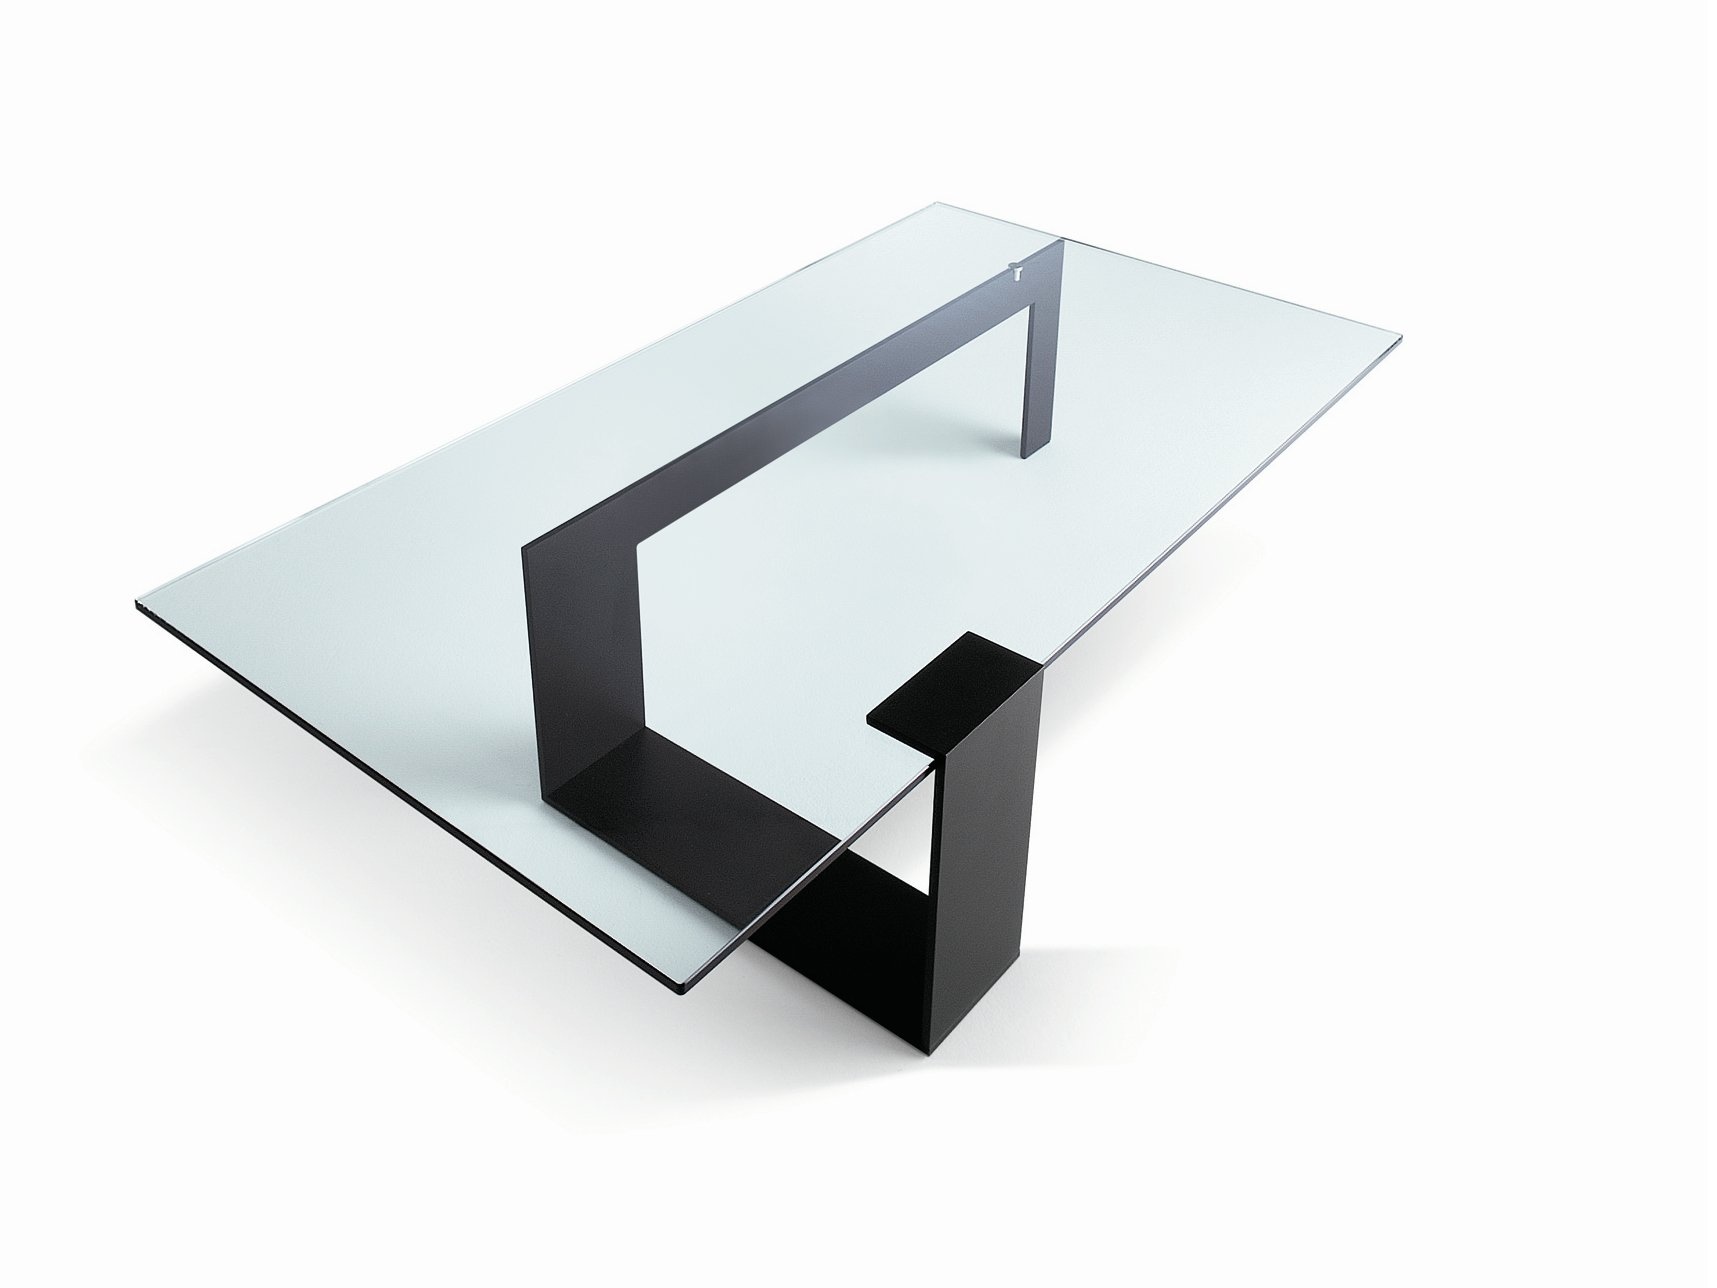 Table basse en verre plinsky by t d tonelli design design giulio mancini - Table basse design en verre ...